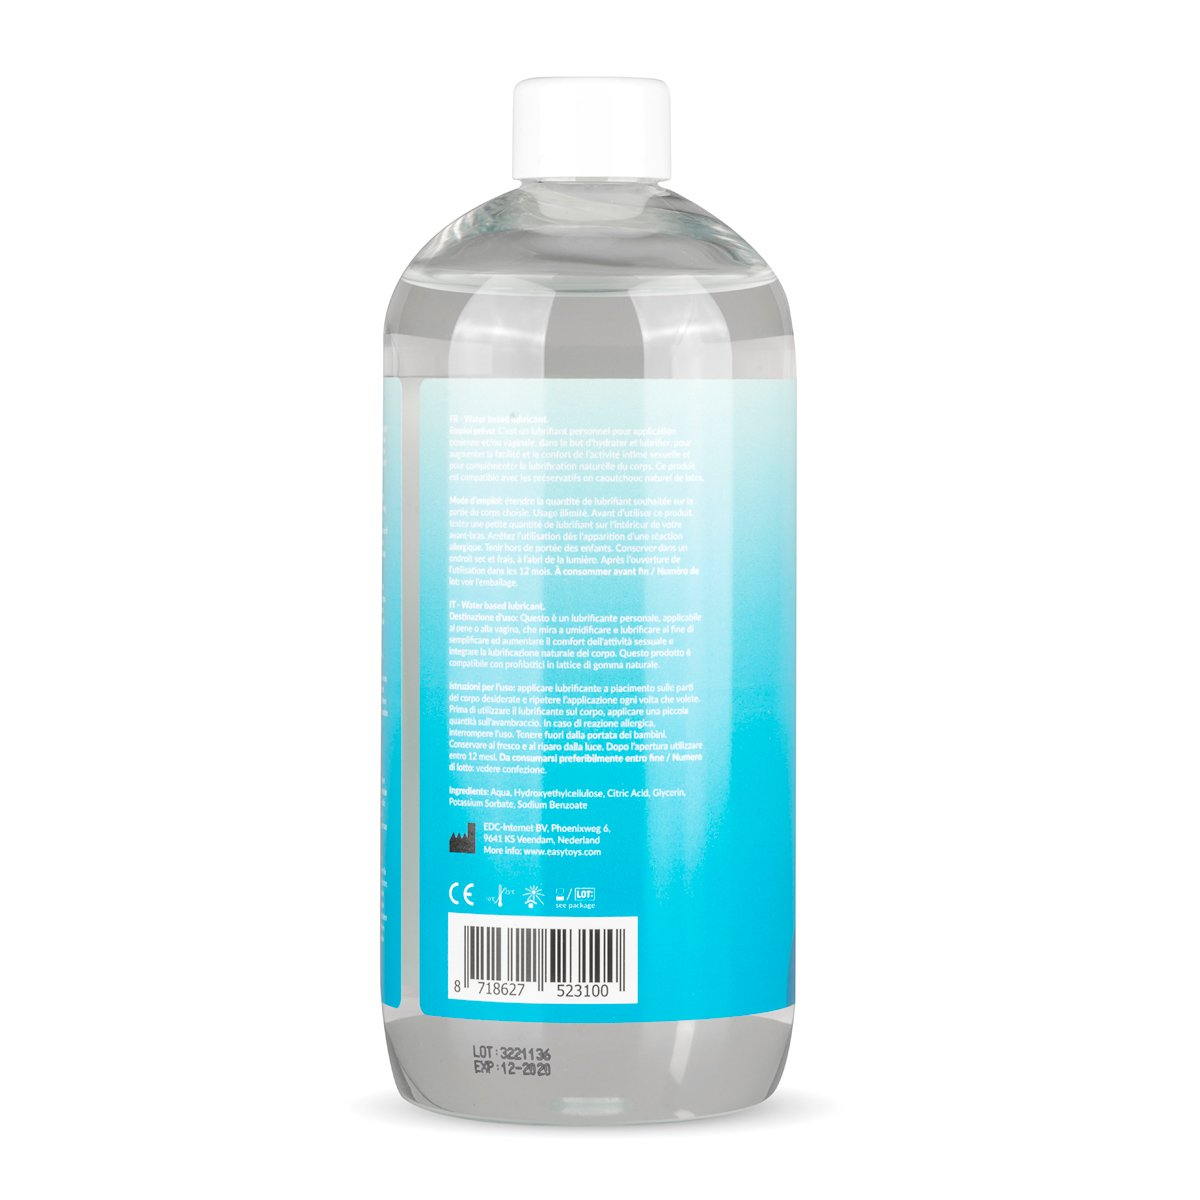 38b167a3b EasyGlide Water Based Lube 500 ml - Personal Lubricant  Amazon.co.uk   Health   Personal Care